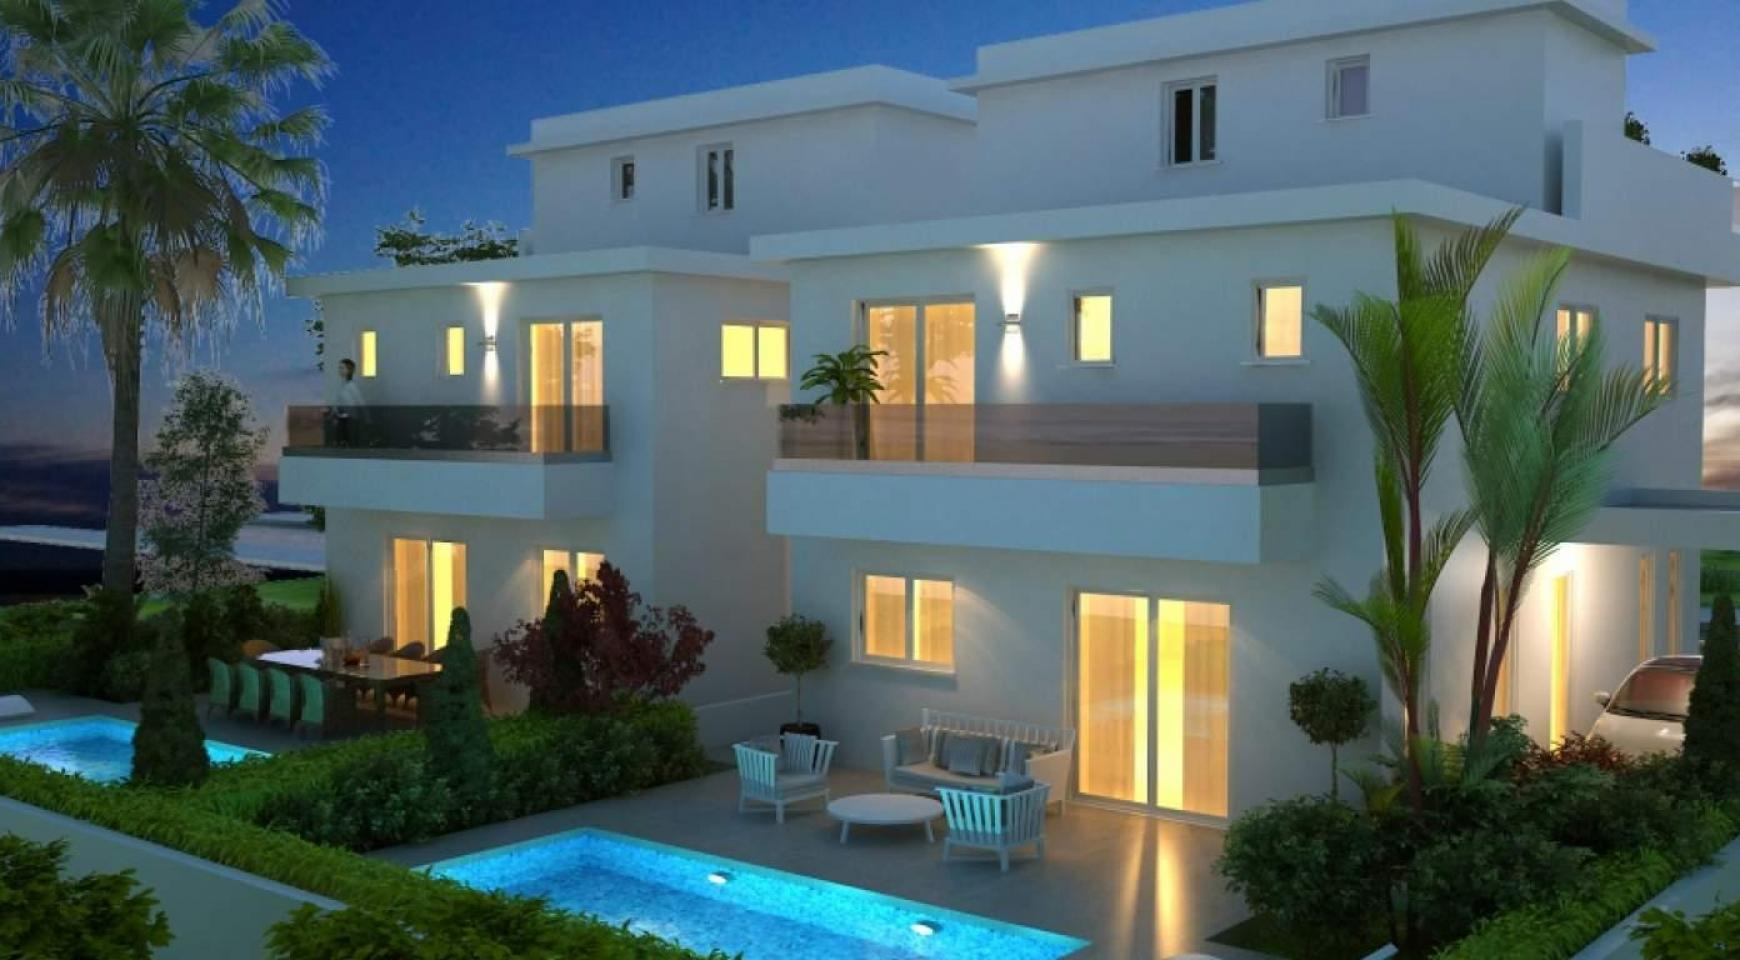 4 Bedroom House in Leivadia Area - 1